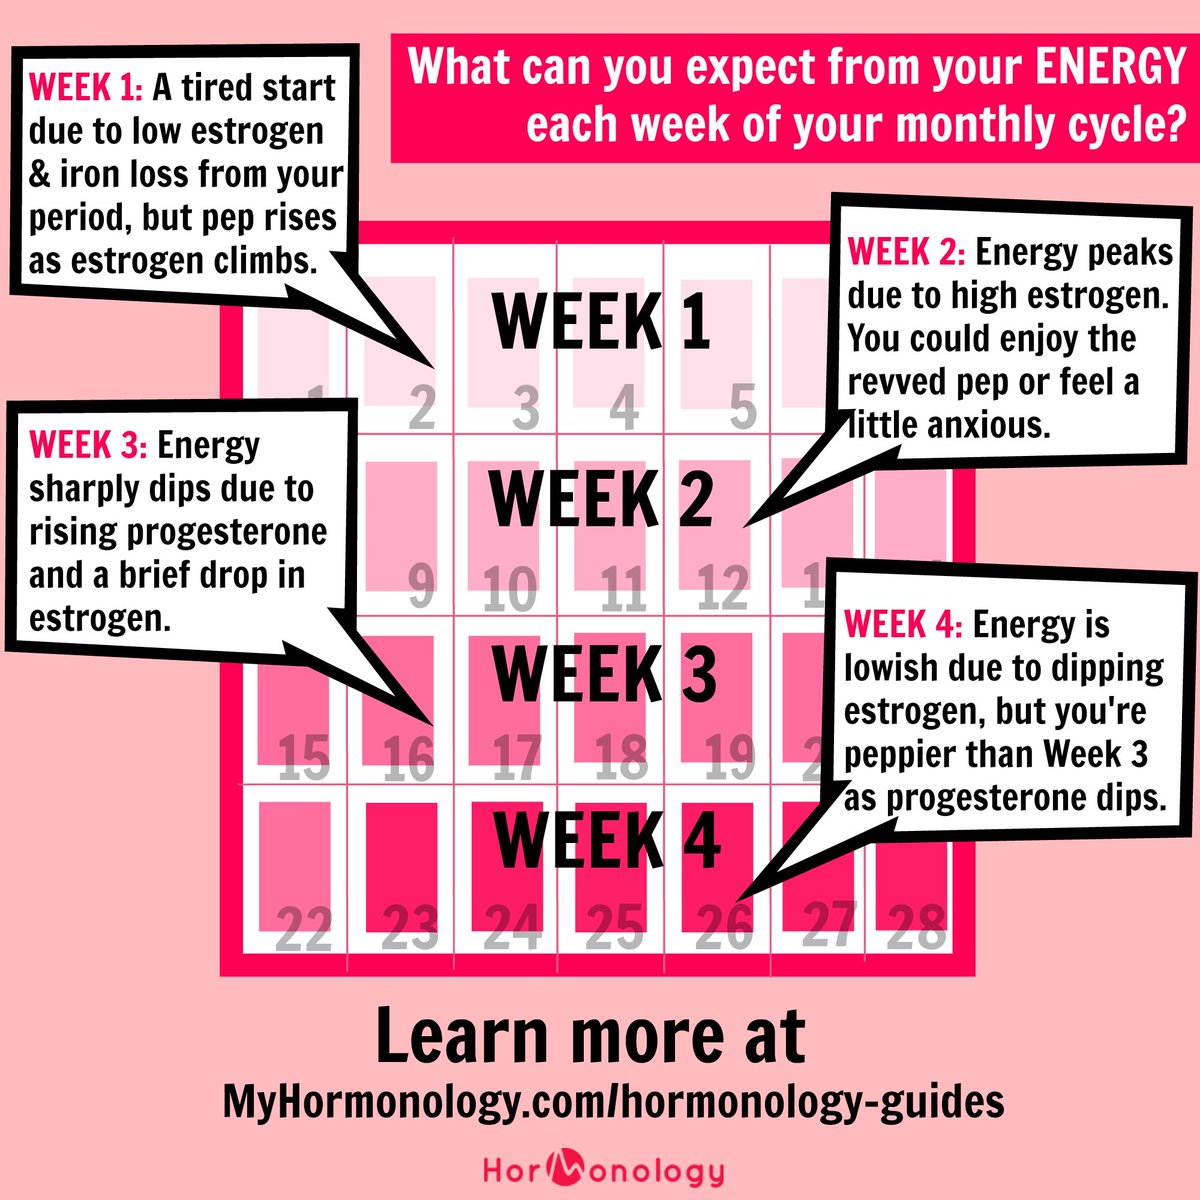 Watch How to Have Energy During Your Period video